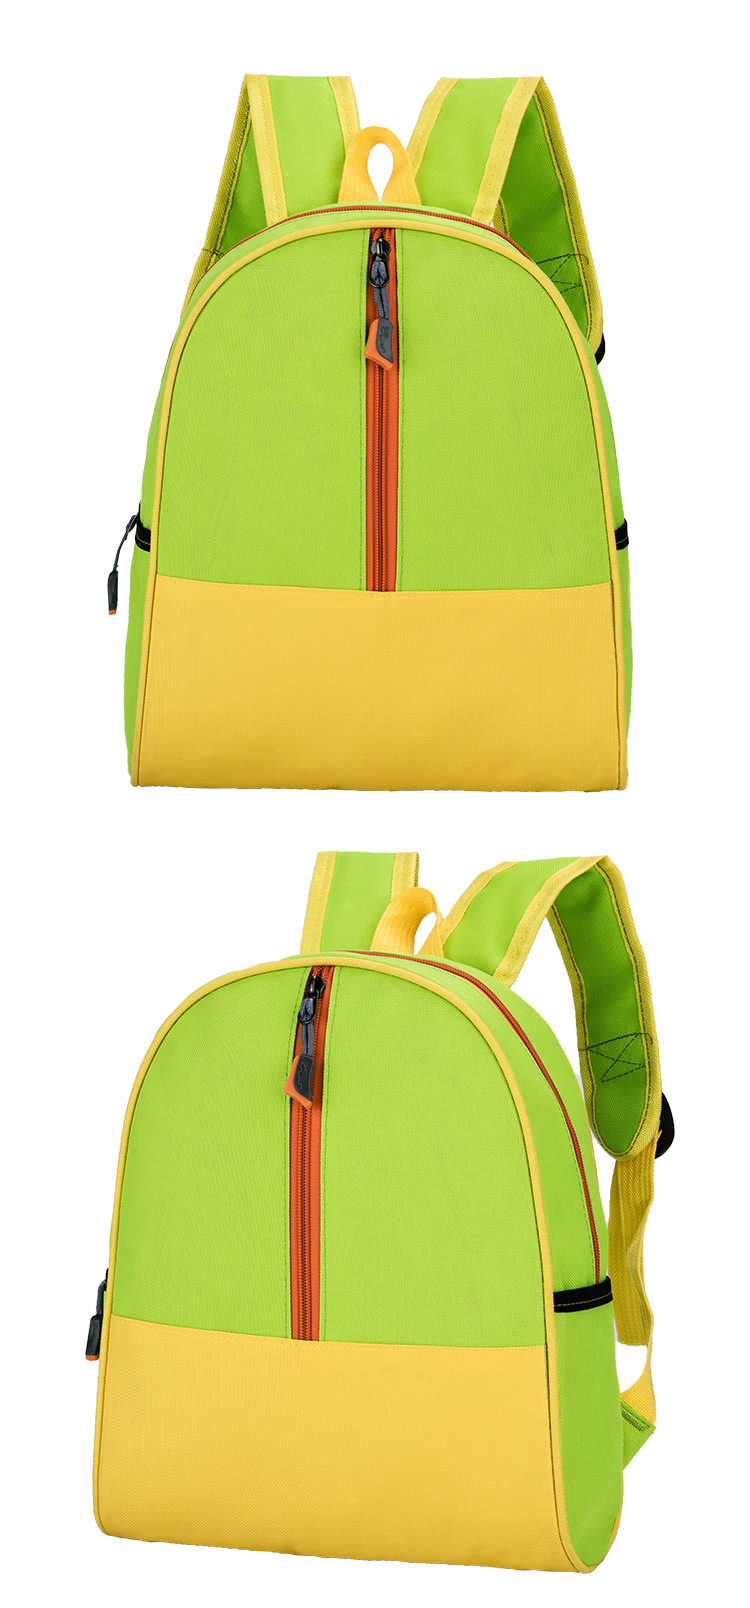 Light Weight Children School Backpack Kindergarten Kids Backpack Bags